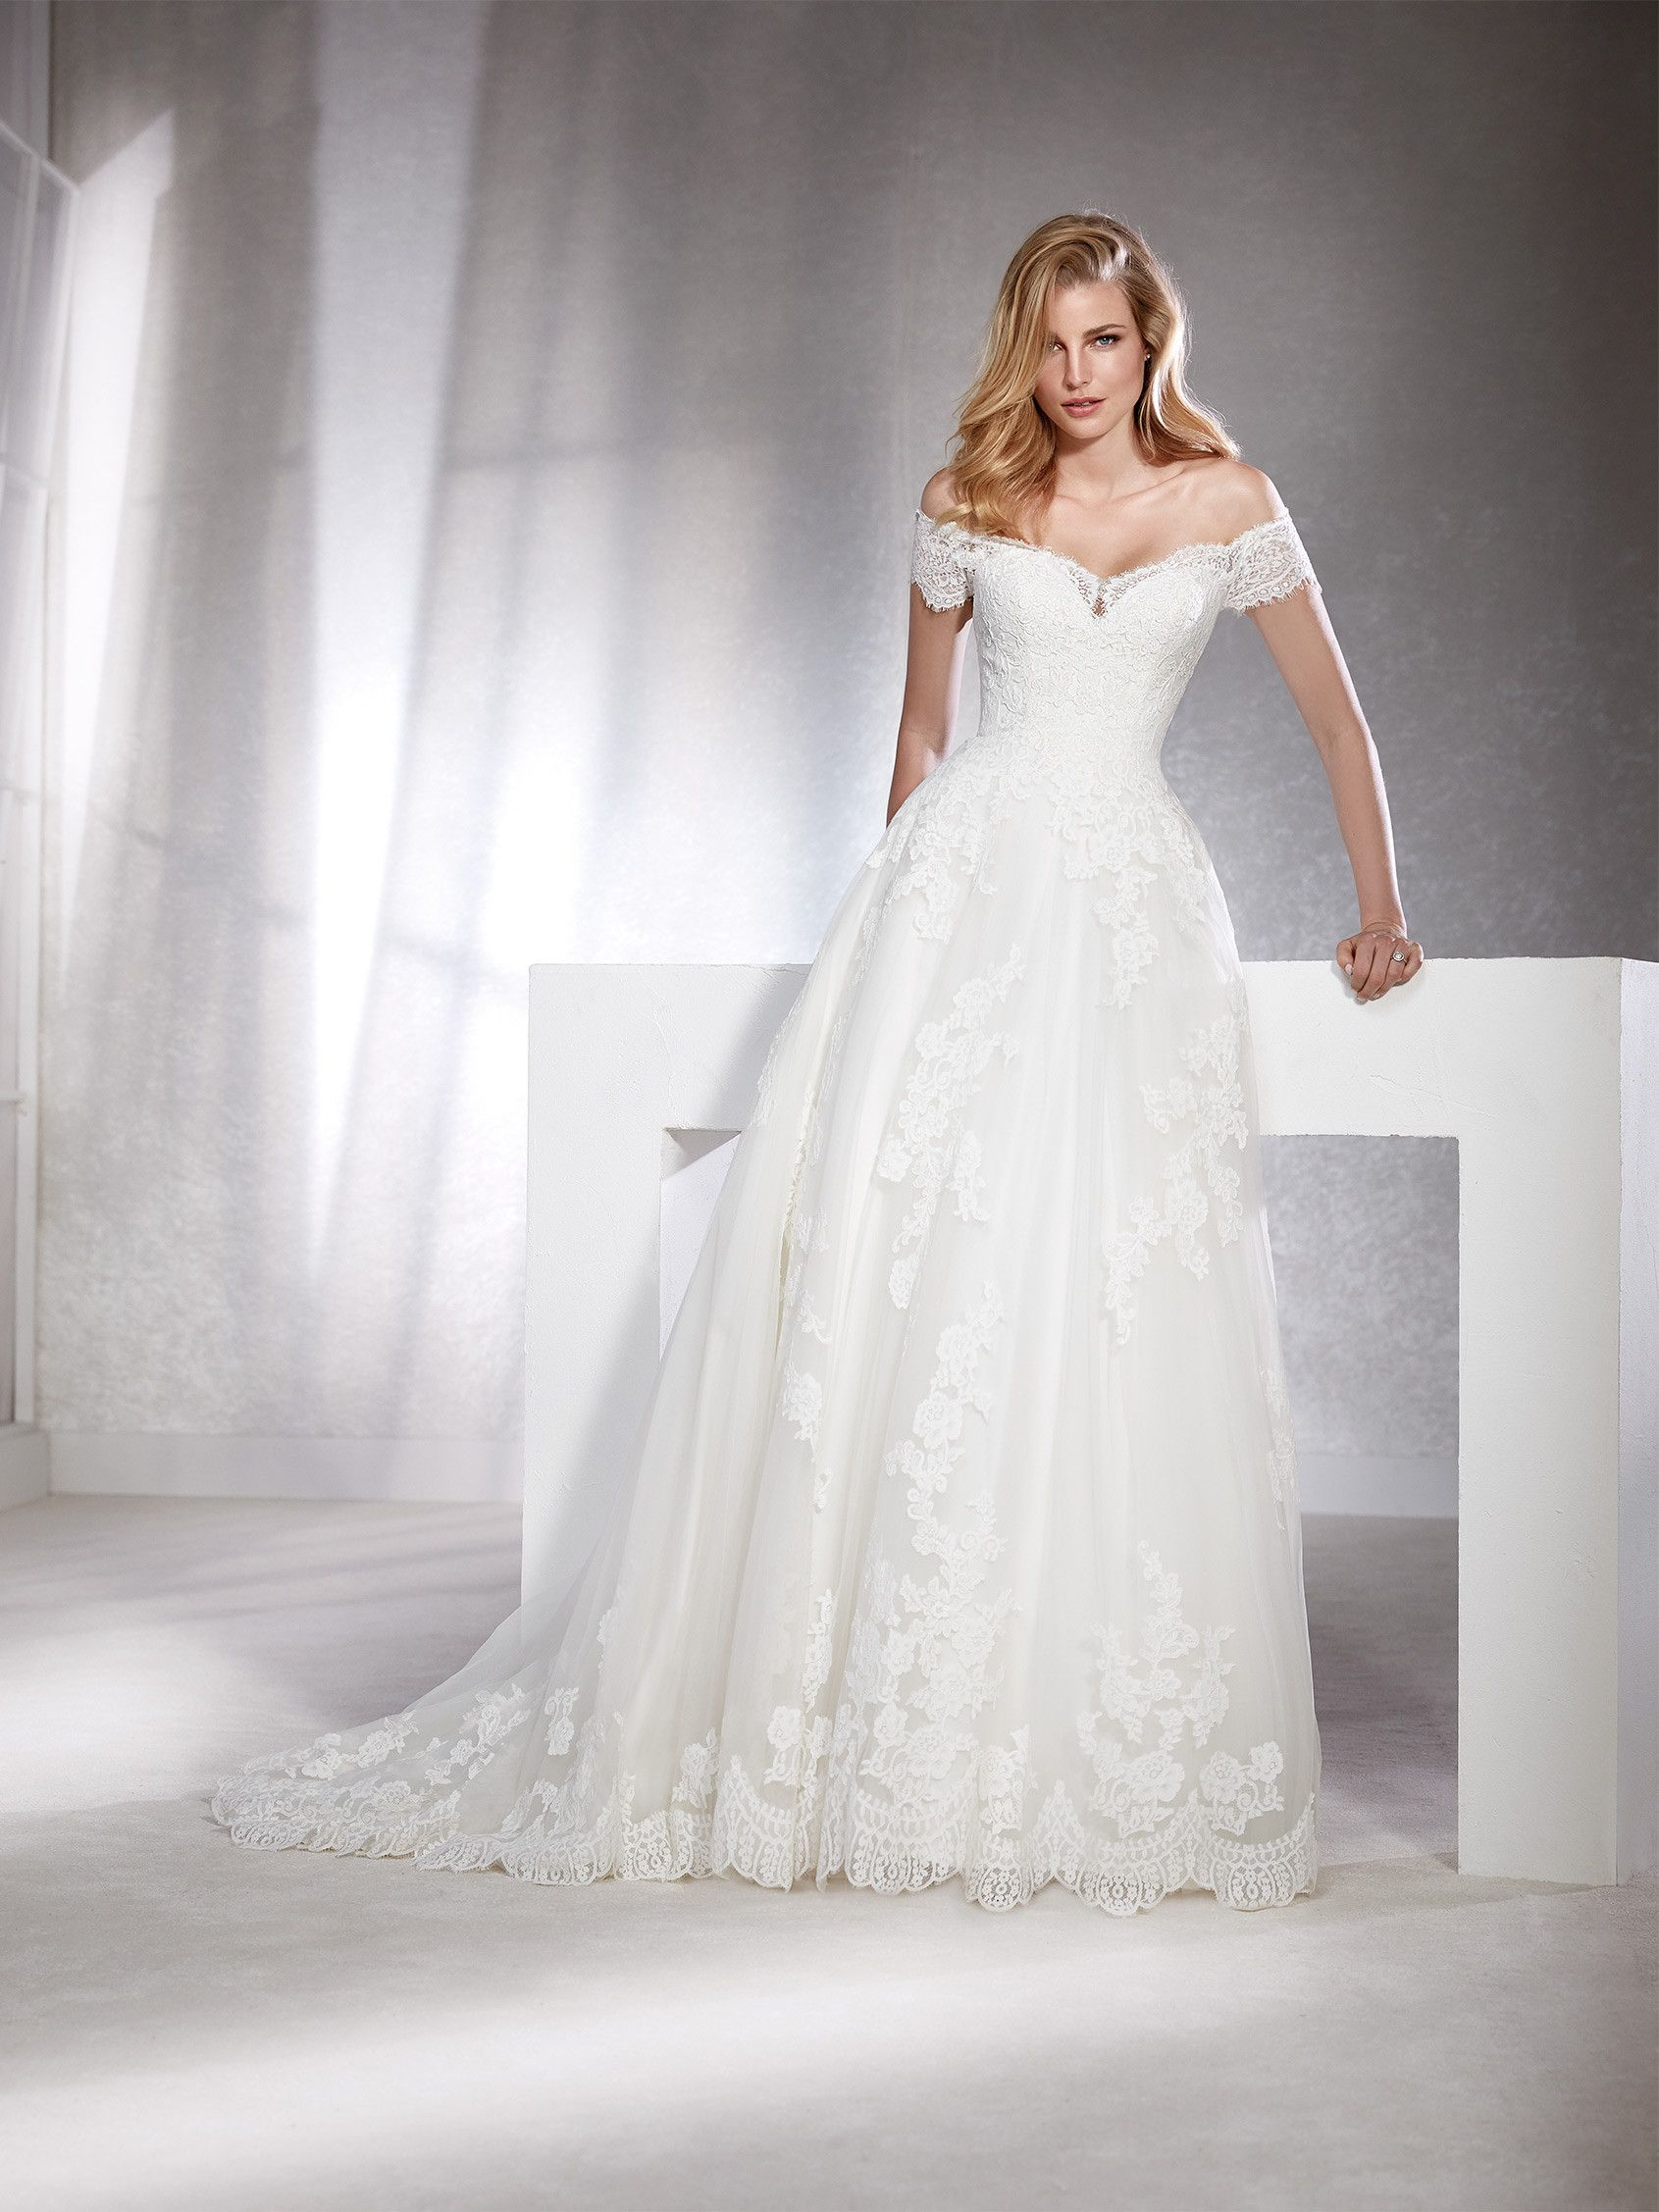 48e691397a35 White One Collection By St. Patrick FABIANA Marvelous wedding dress with an  off-the-shoulder neckline and short sleeves. A lovely design in tulle and  lace ...